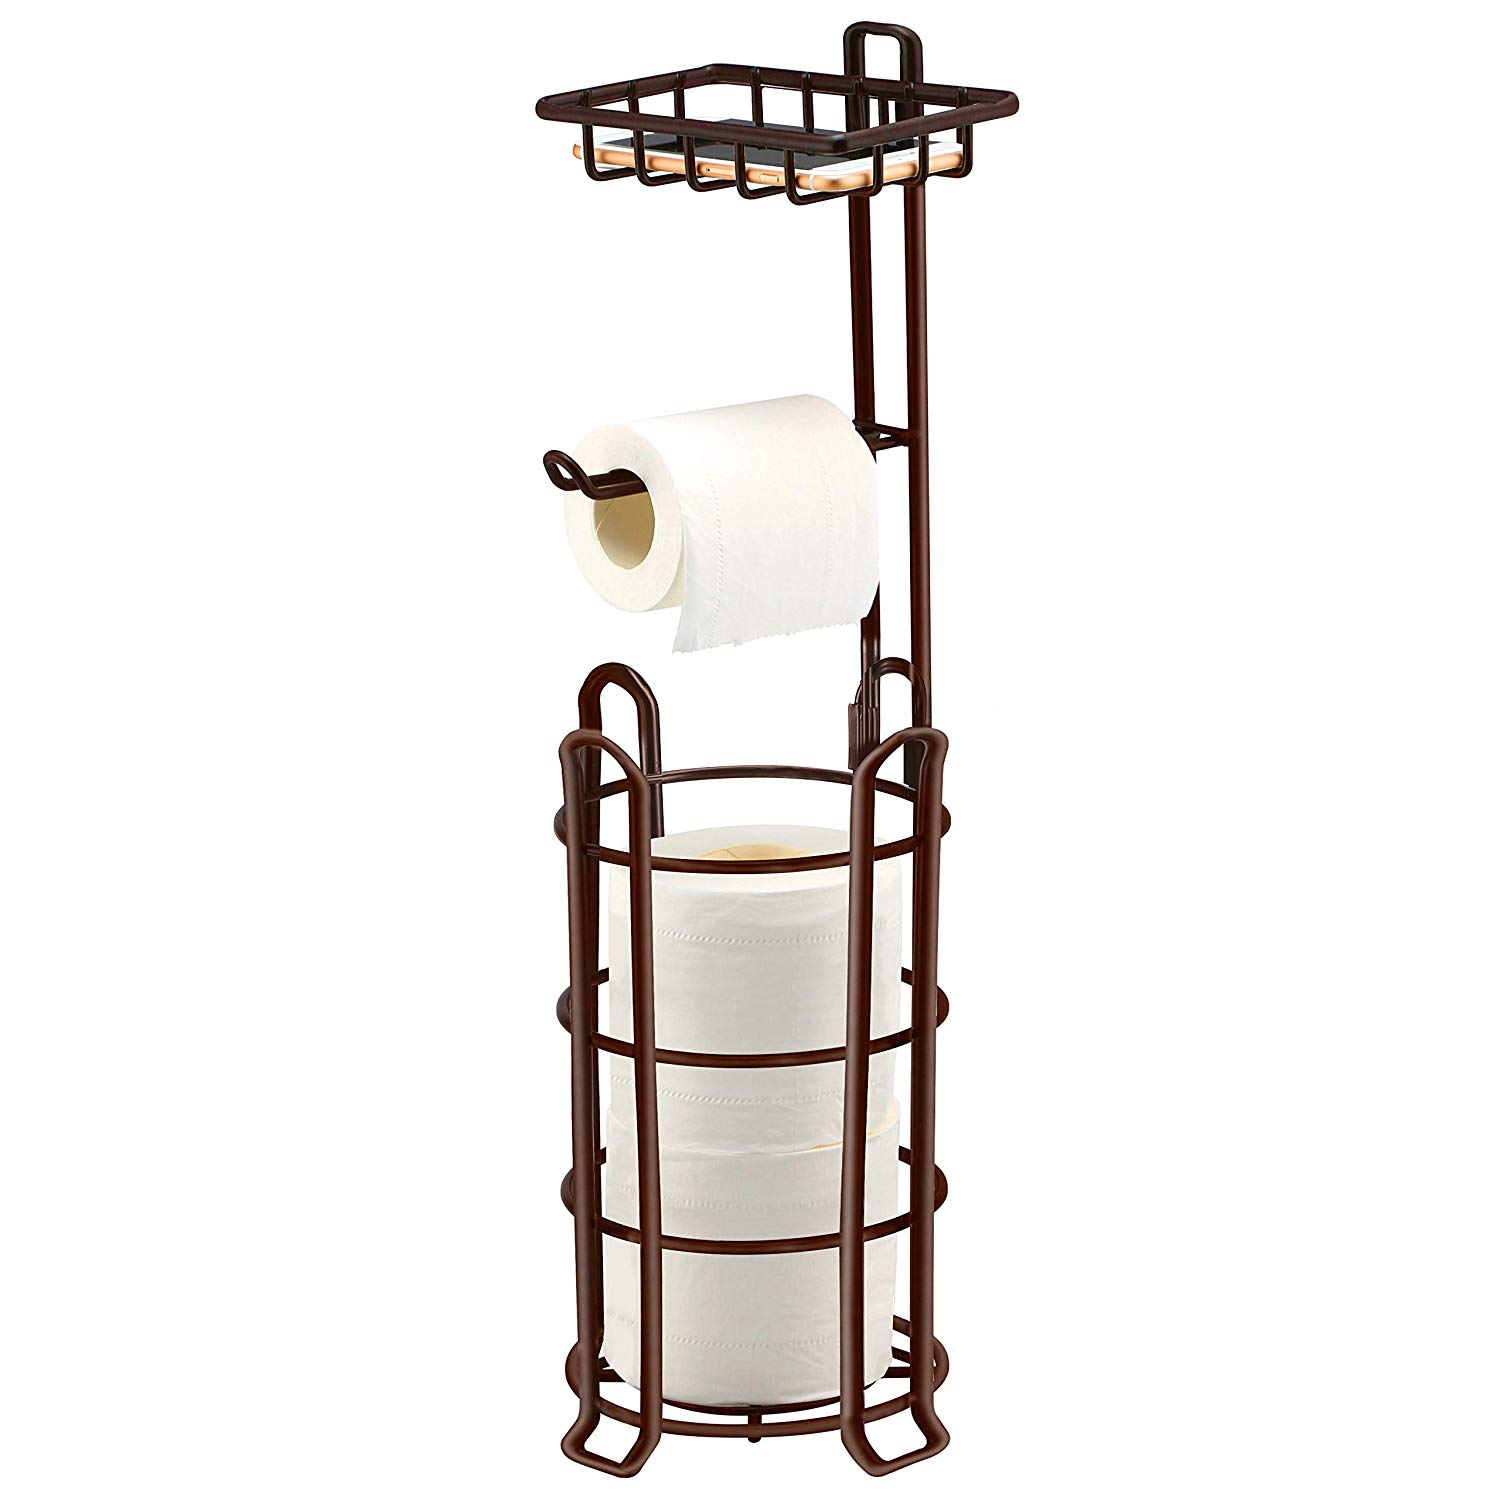 TomCare Toilet Paper Holder Bathroom Accessories Toilet Paper Stand